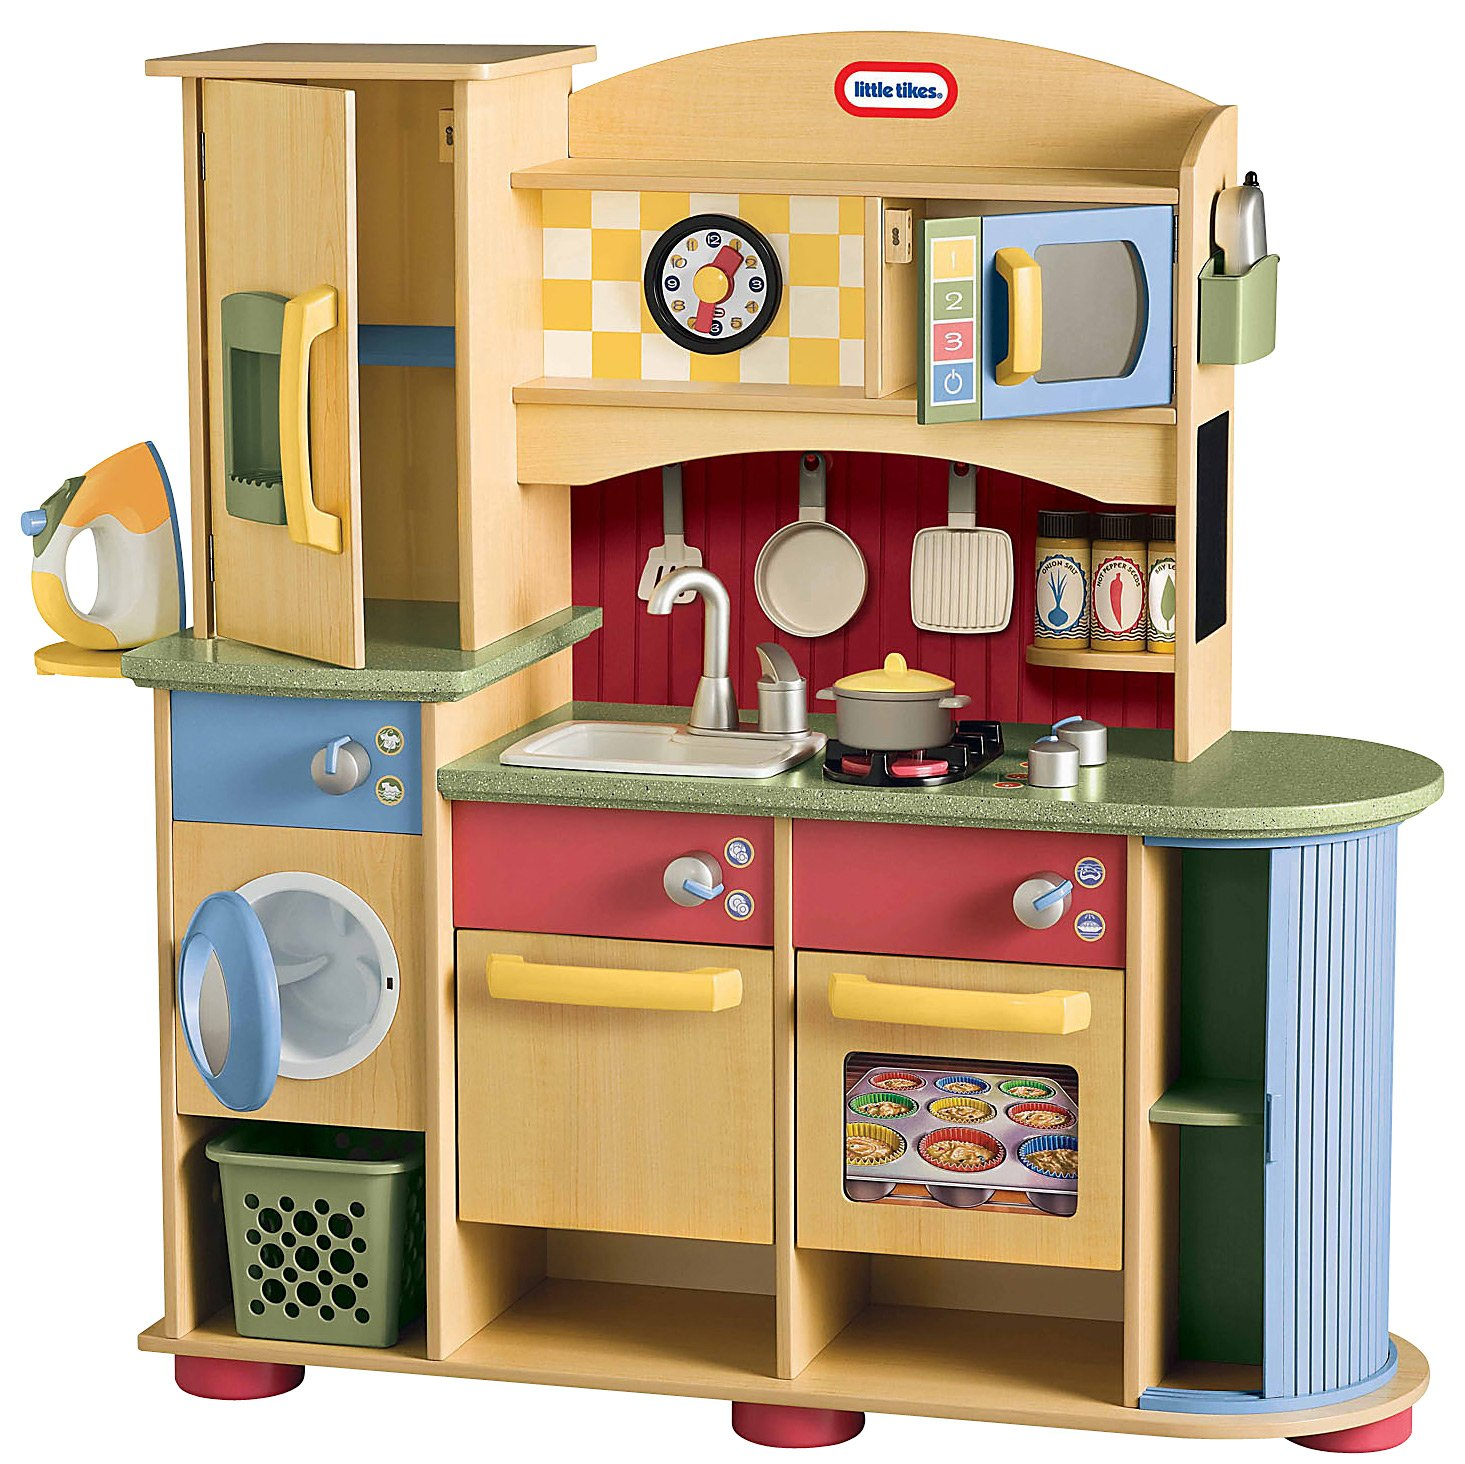 Little tikes deluxe wooden kitchen and laundry center for Kitchen setting pictures